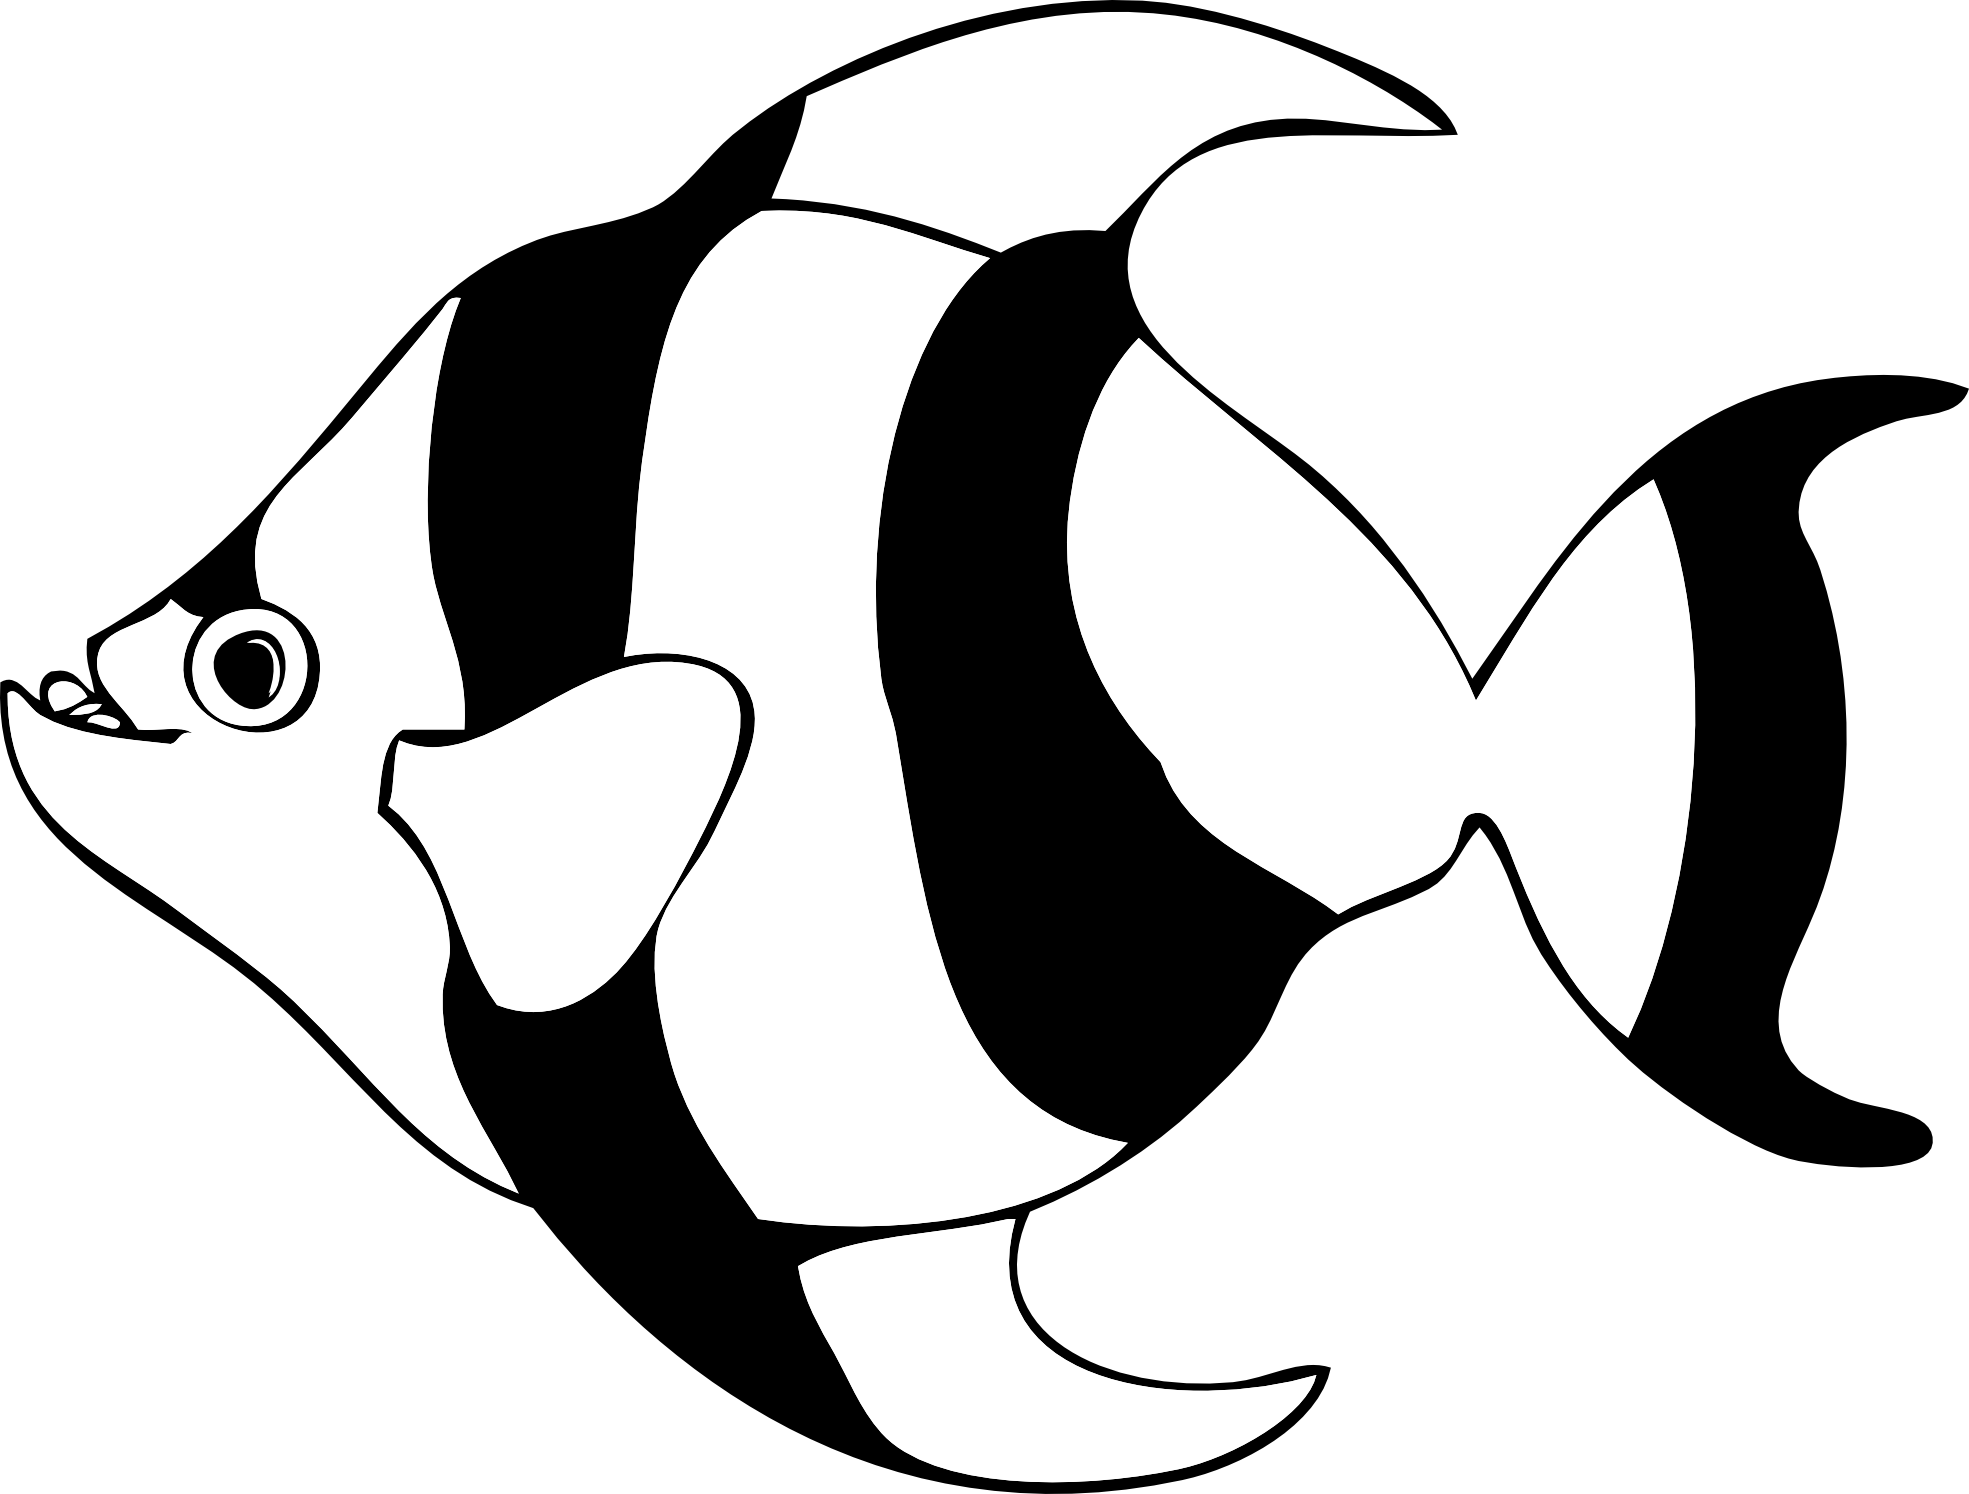 1969x1494 Black And White Fish Clipart